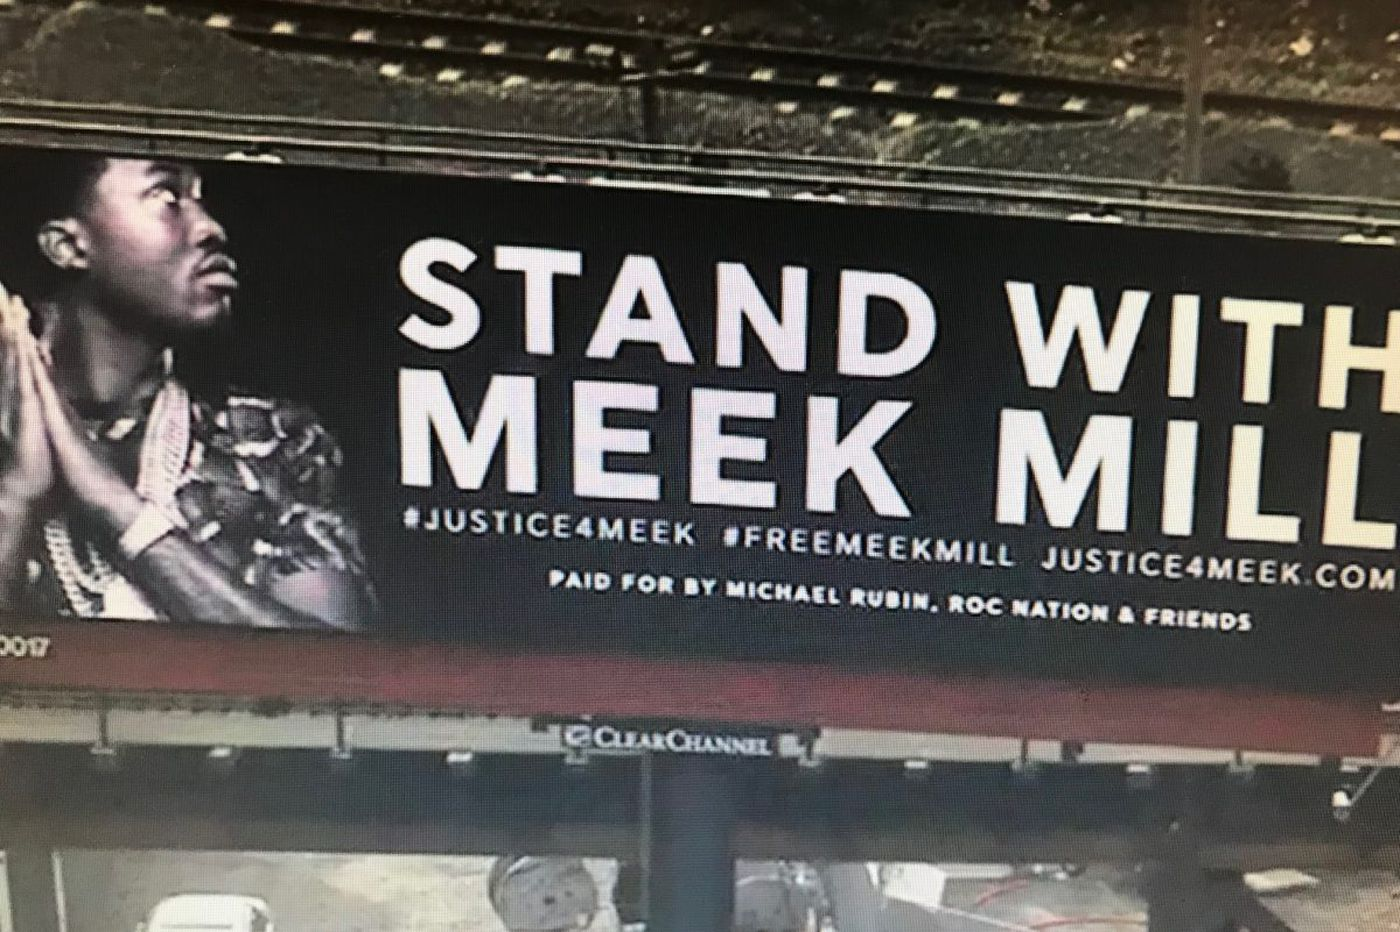 Who is behind those 'Stand With Meek Mill' billboards?